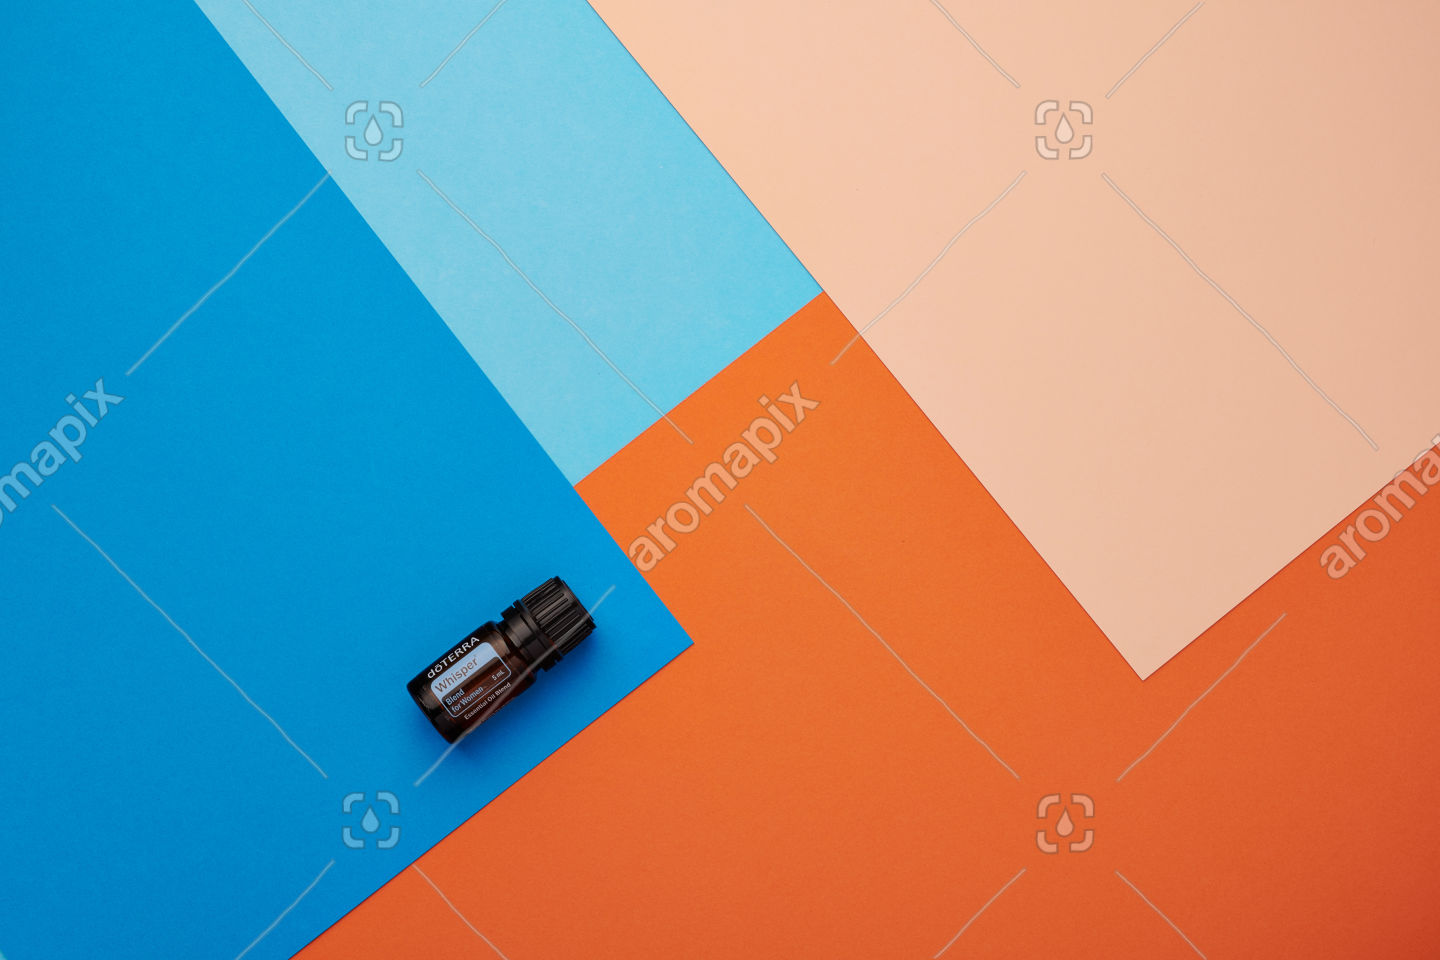 doTERRA Whisper on a blue and orange background